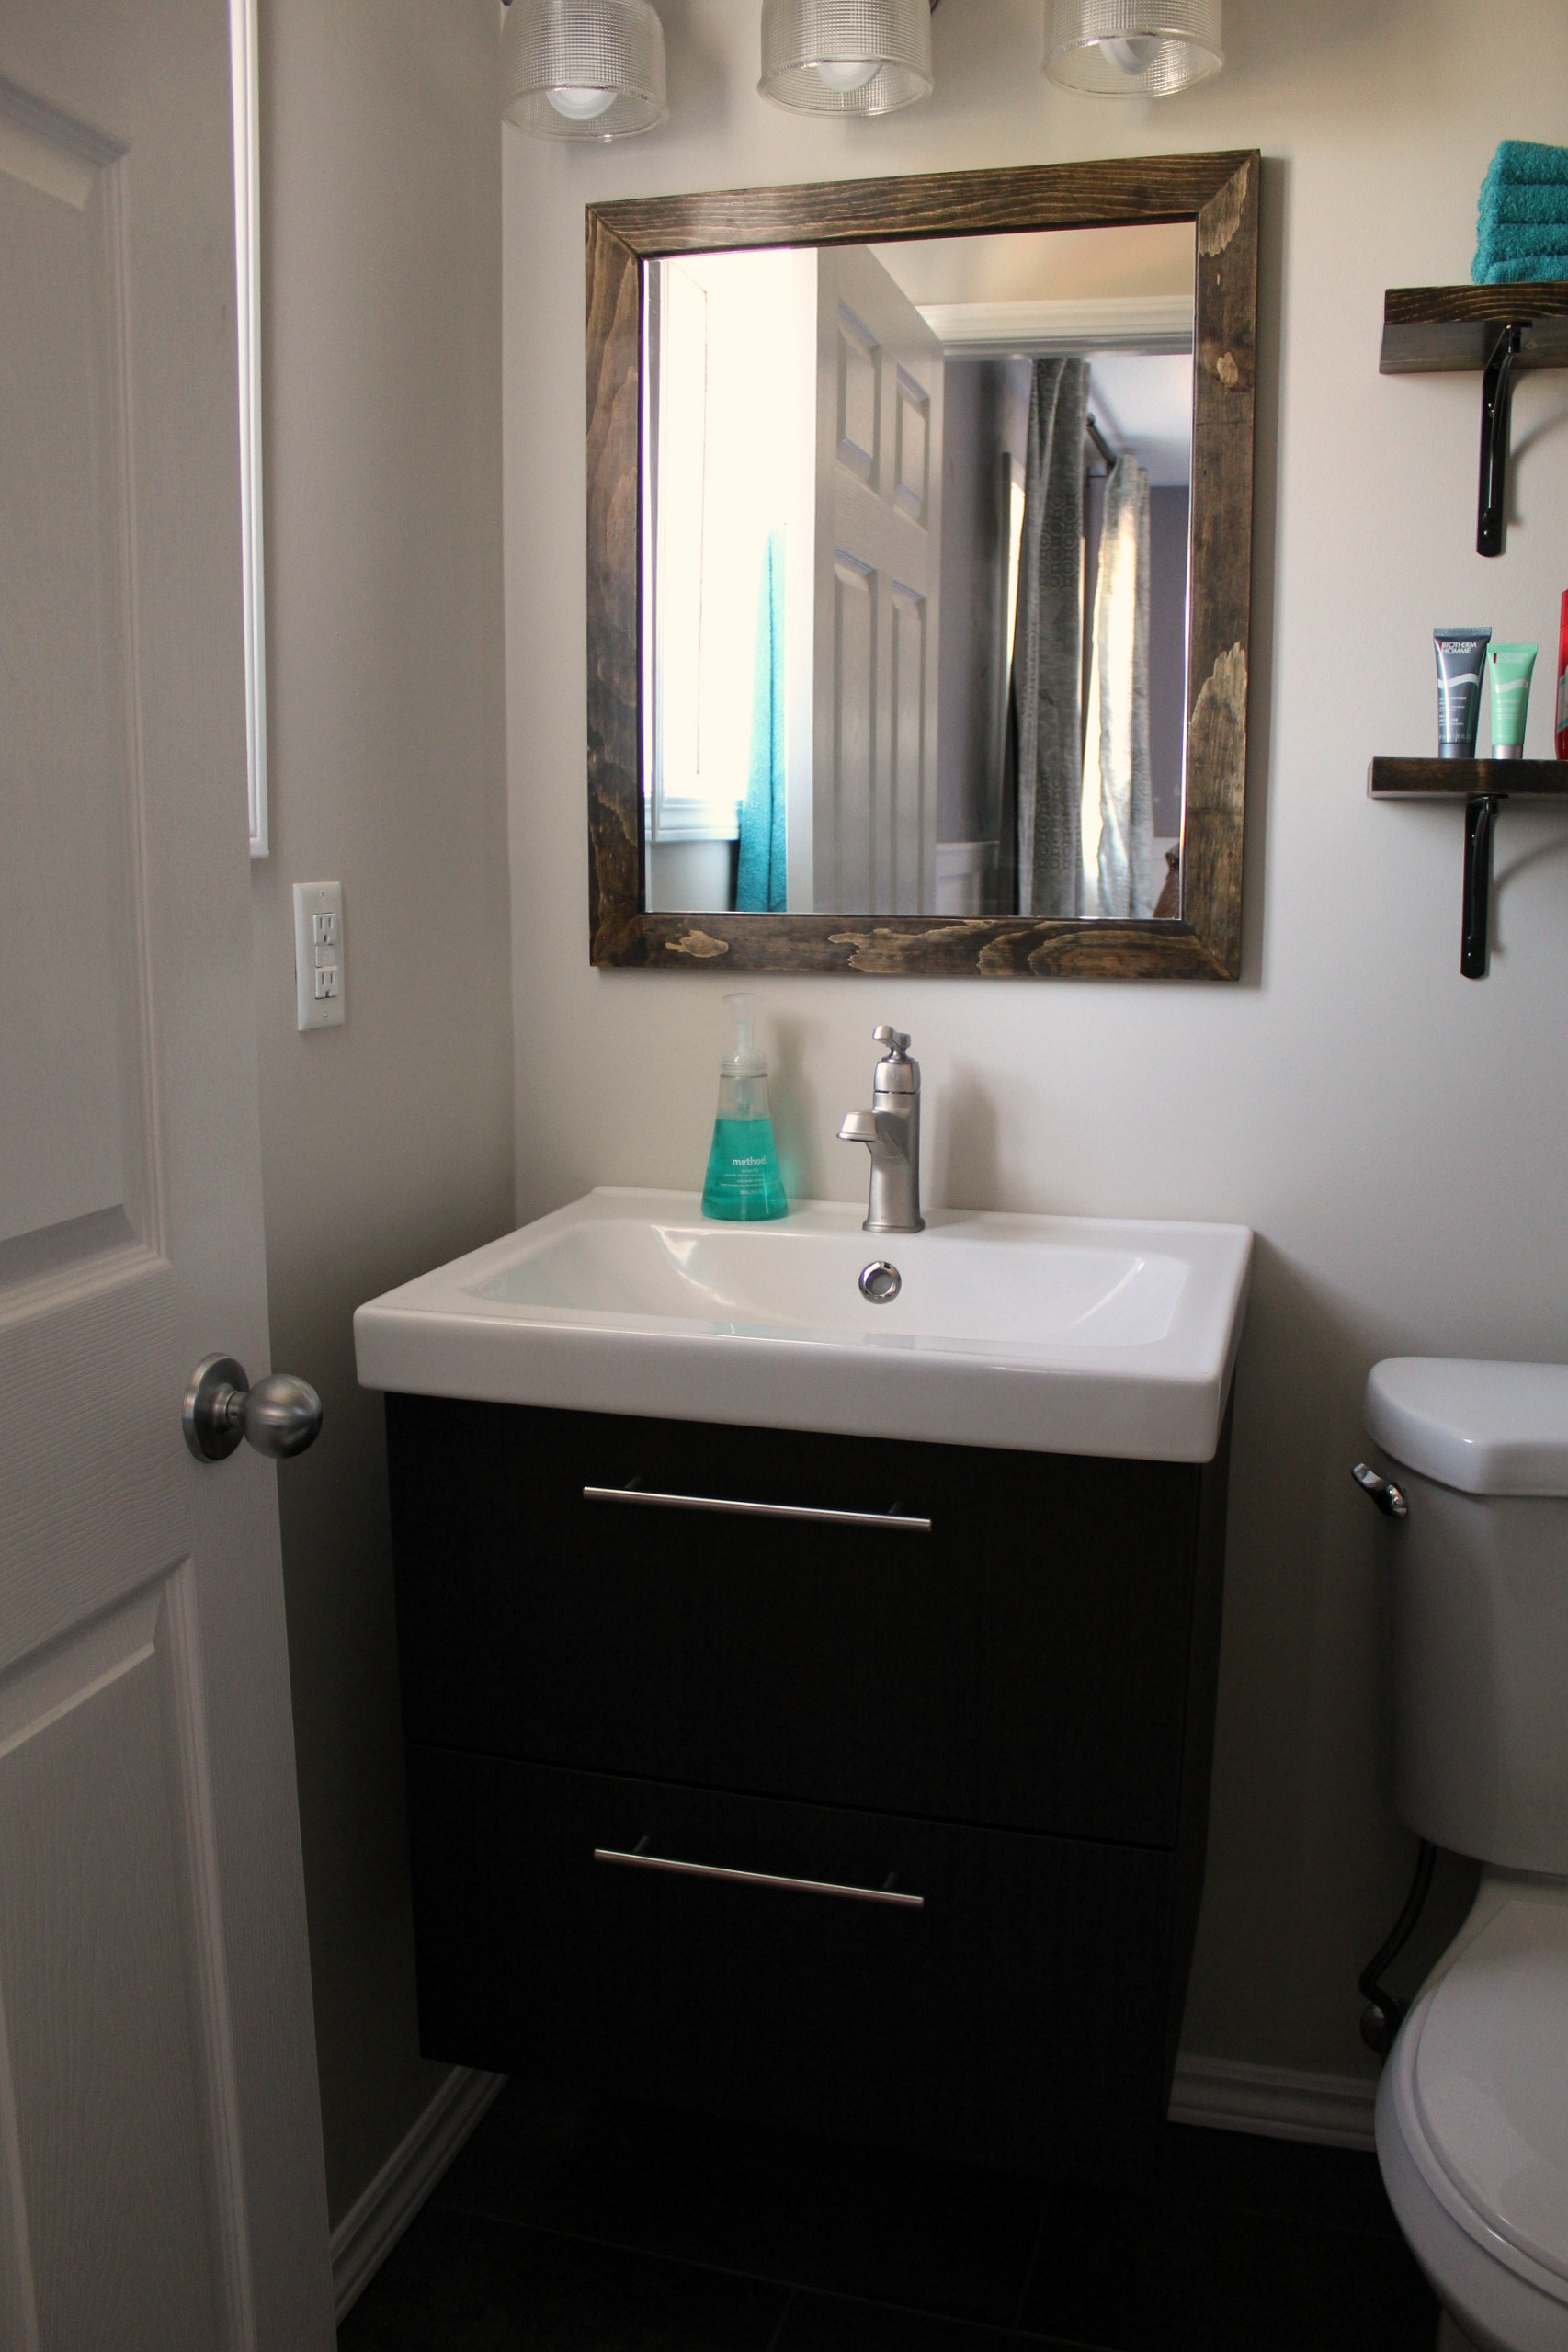 Ikea Badezimmer Installation Turtles And Tails Ensuite Bathroom Reno Reveal